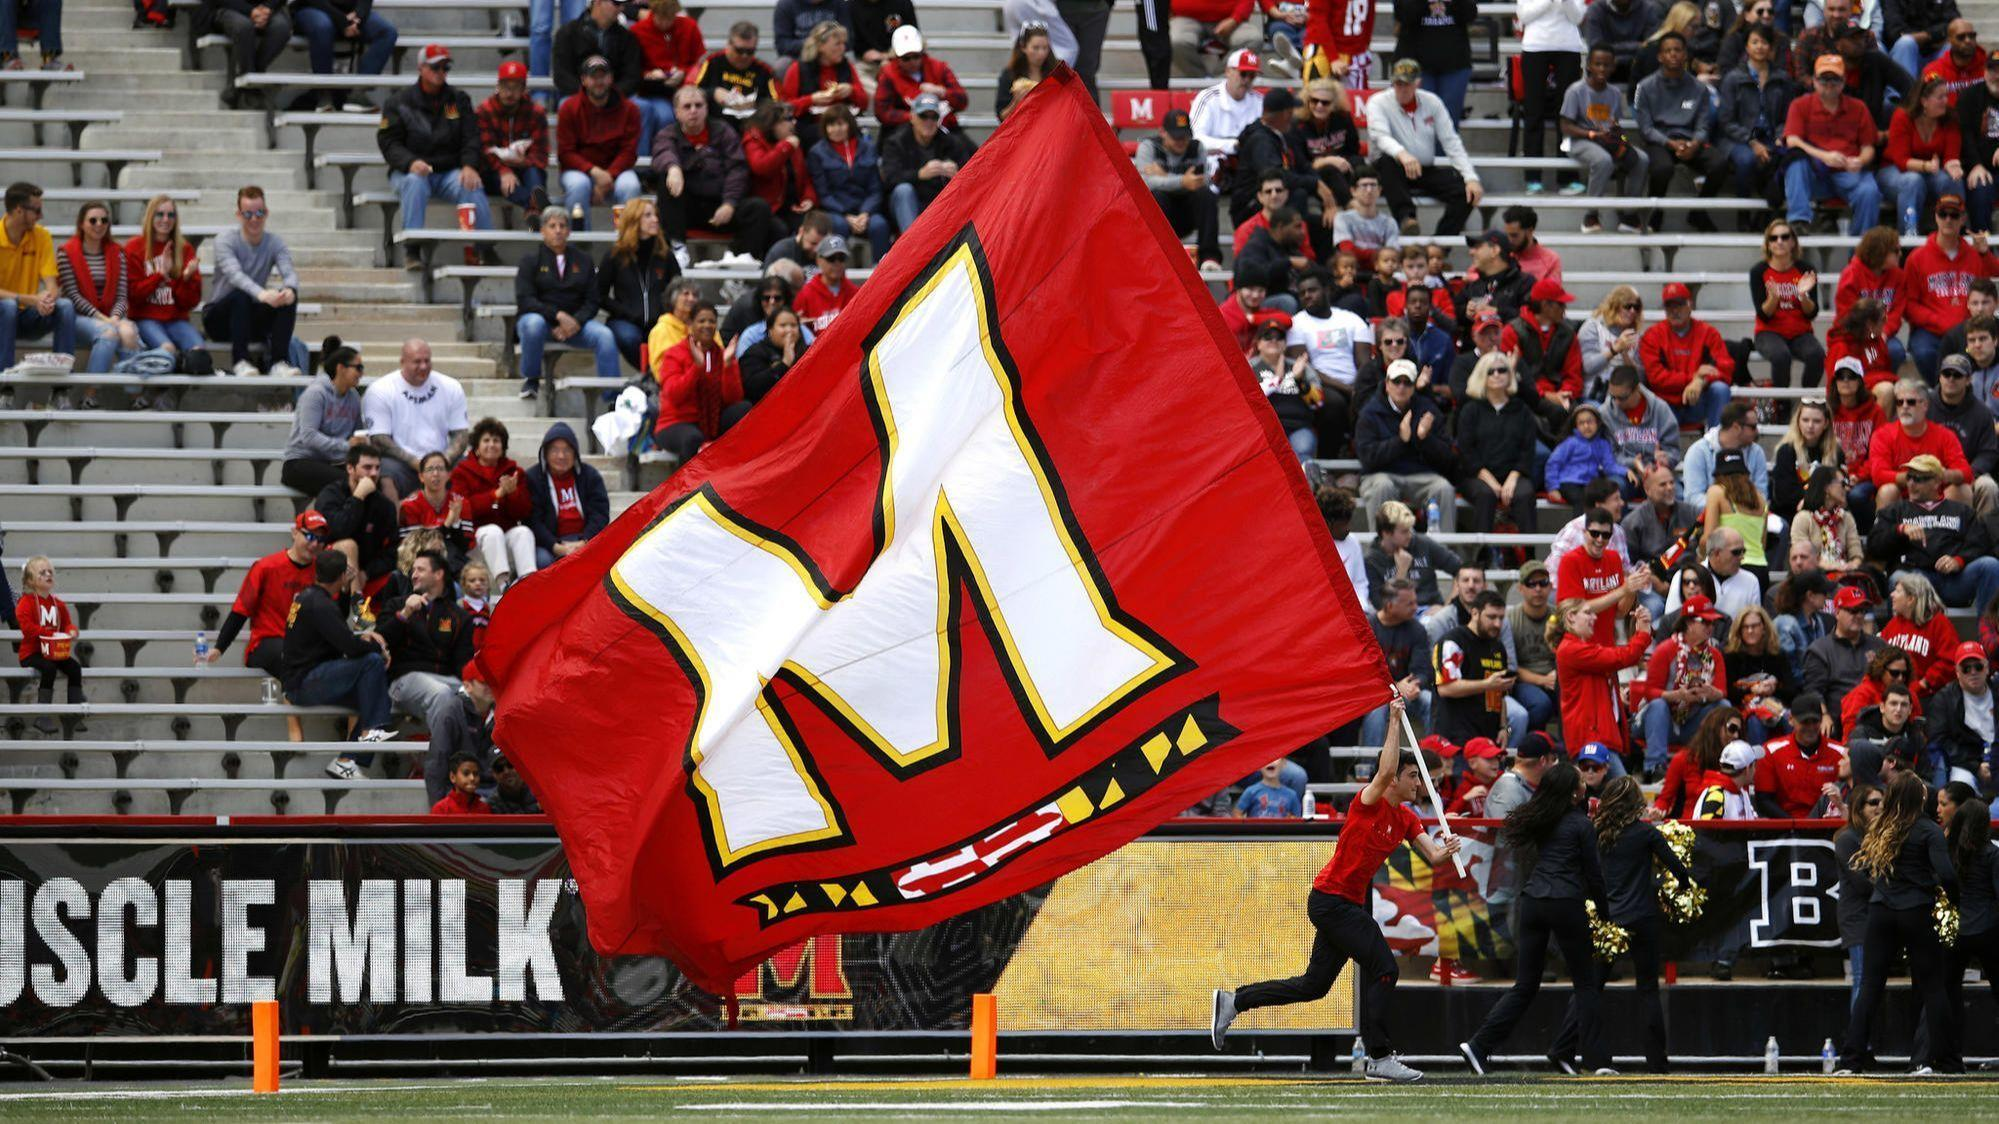 Bs-md-maryland-football-mcnair-20181019